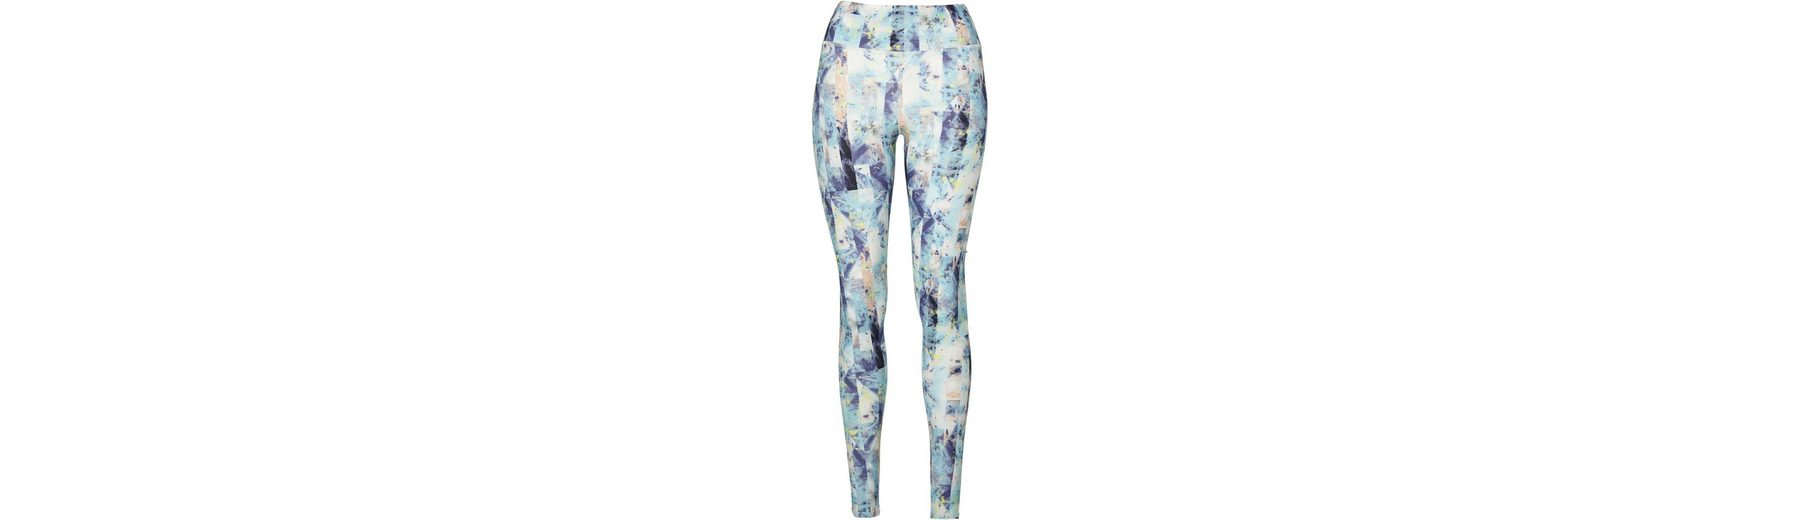 O'Neill Legging Print high rise Limited Edition Online 7tzUh